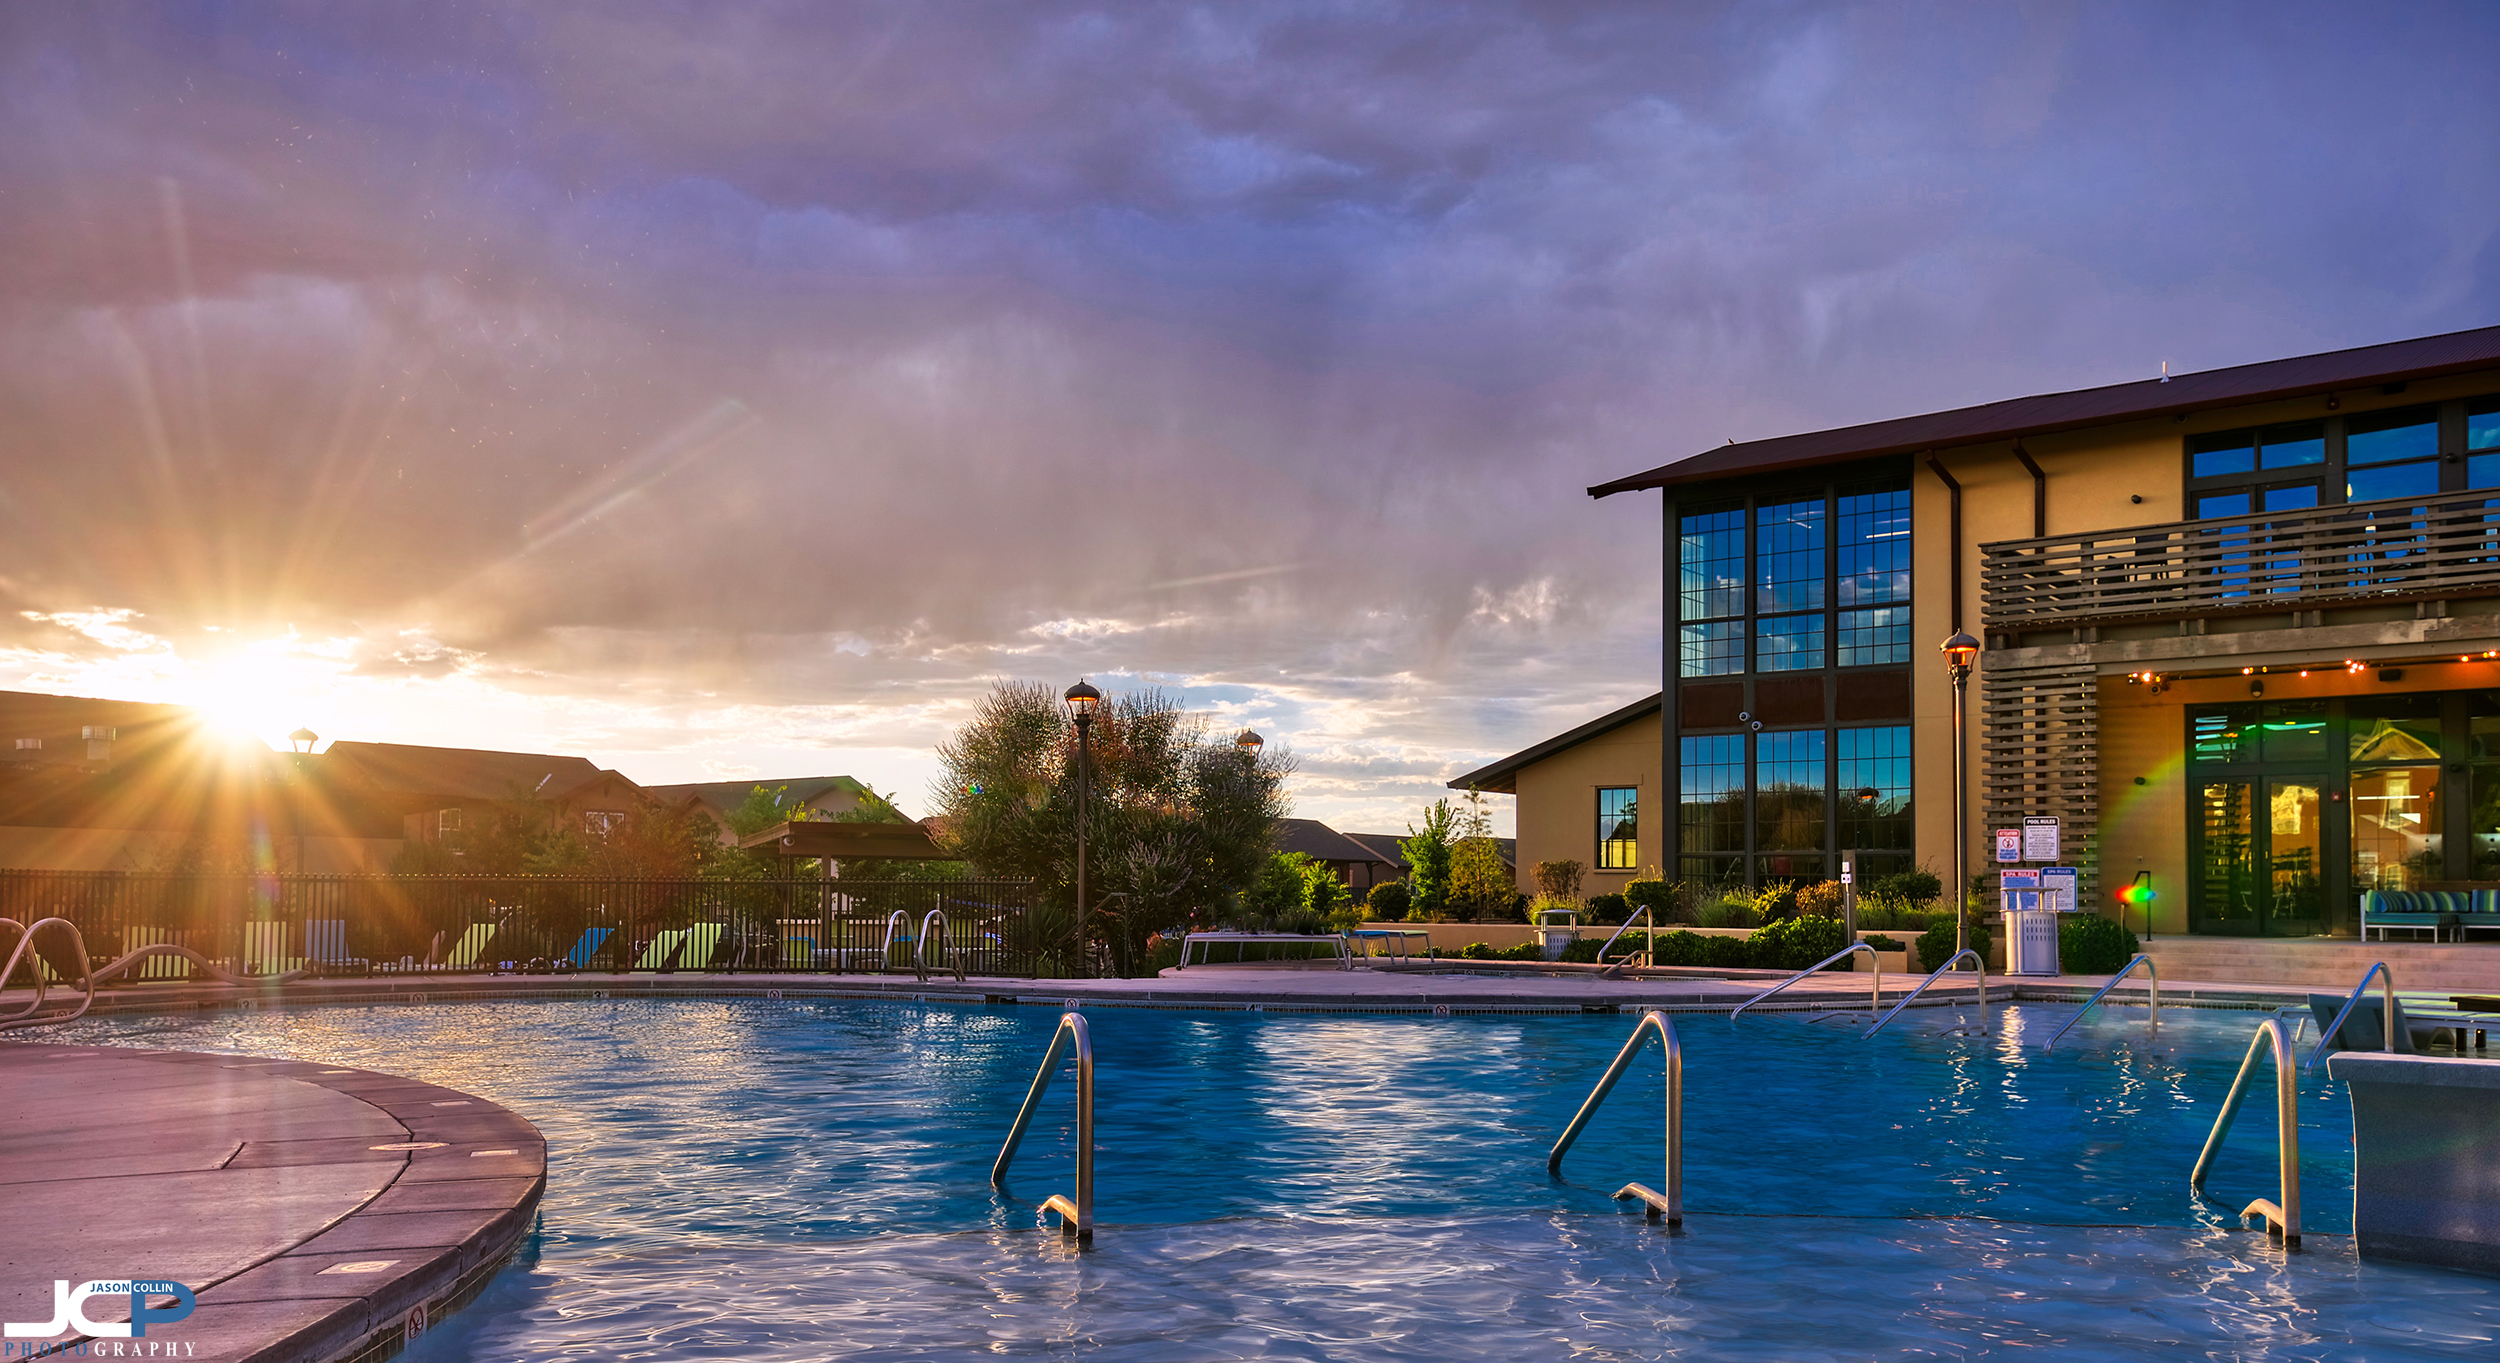 The view from in the pool is quite spectacular - Albuquerque, New Mexico professional apartment photography